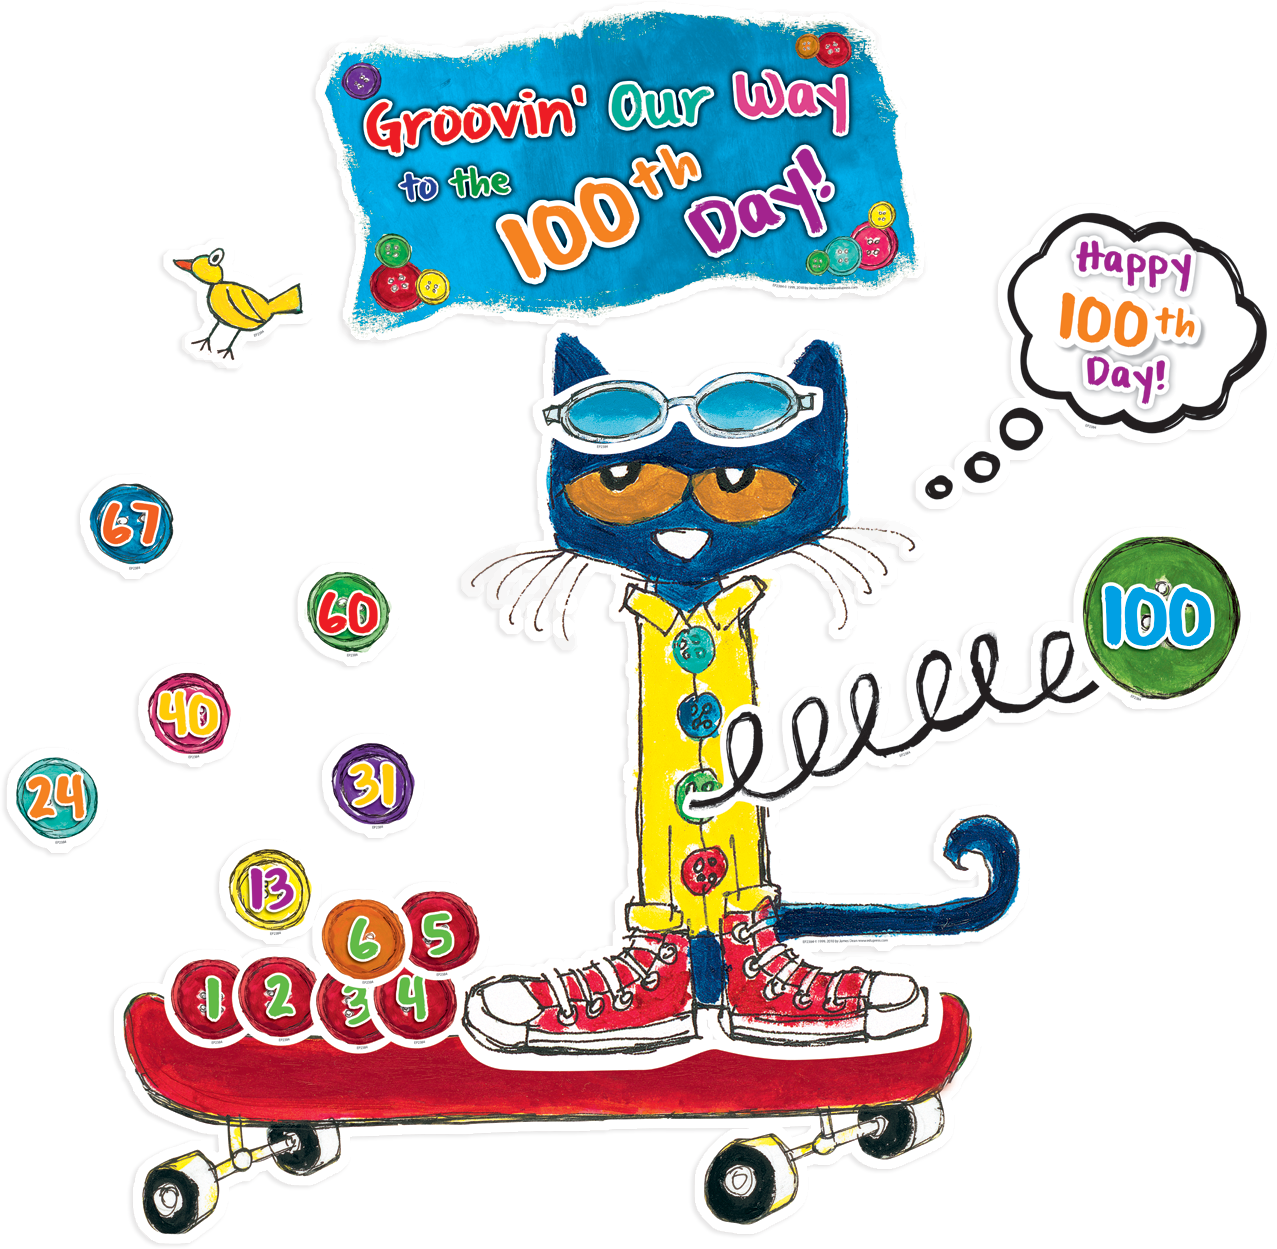 "Pete the Cat 100 Groovy Days of School Bulletin Board - Celebrate 100 groovy days of school with Pete the Cat! Students will love watching the buttons stack up all the way to the 100th day. Buttons are also perfect for patterning and counting activities. Includes ""We're Groovin' Our Way to the 100th Day"" banner, 100 buttons, 100th Day thought bubble, large Pete the Cat, skateboard, accent pieces, and teacher guide with activities and reproducibles."